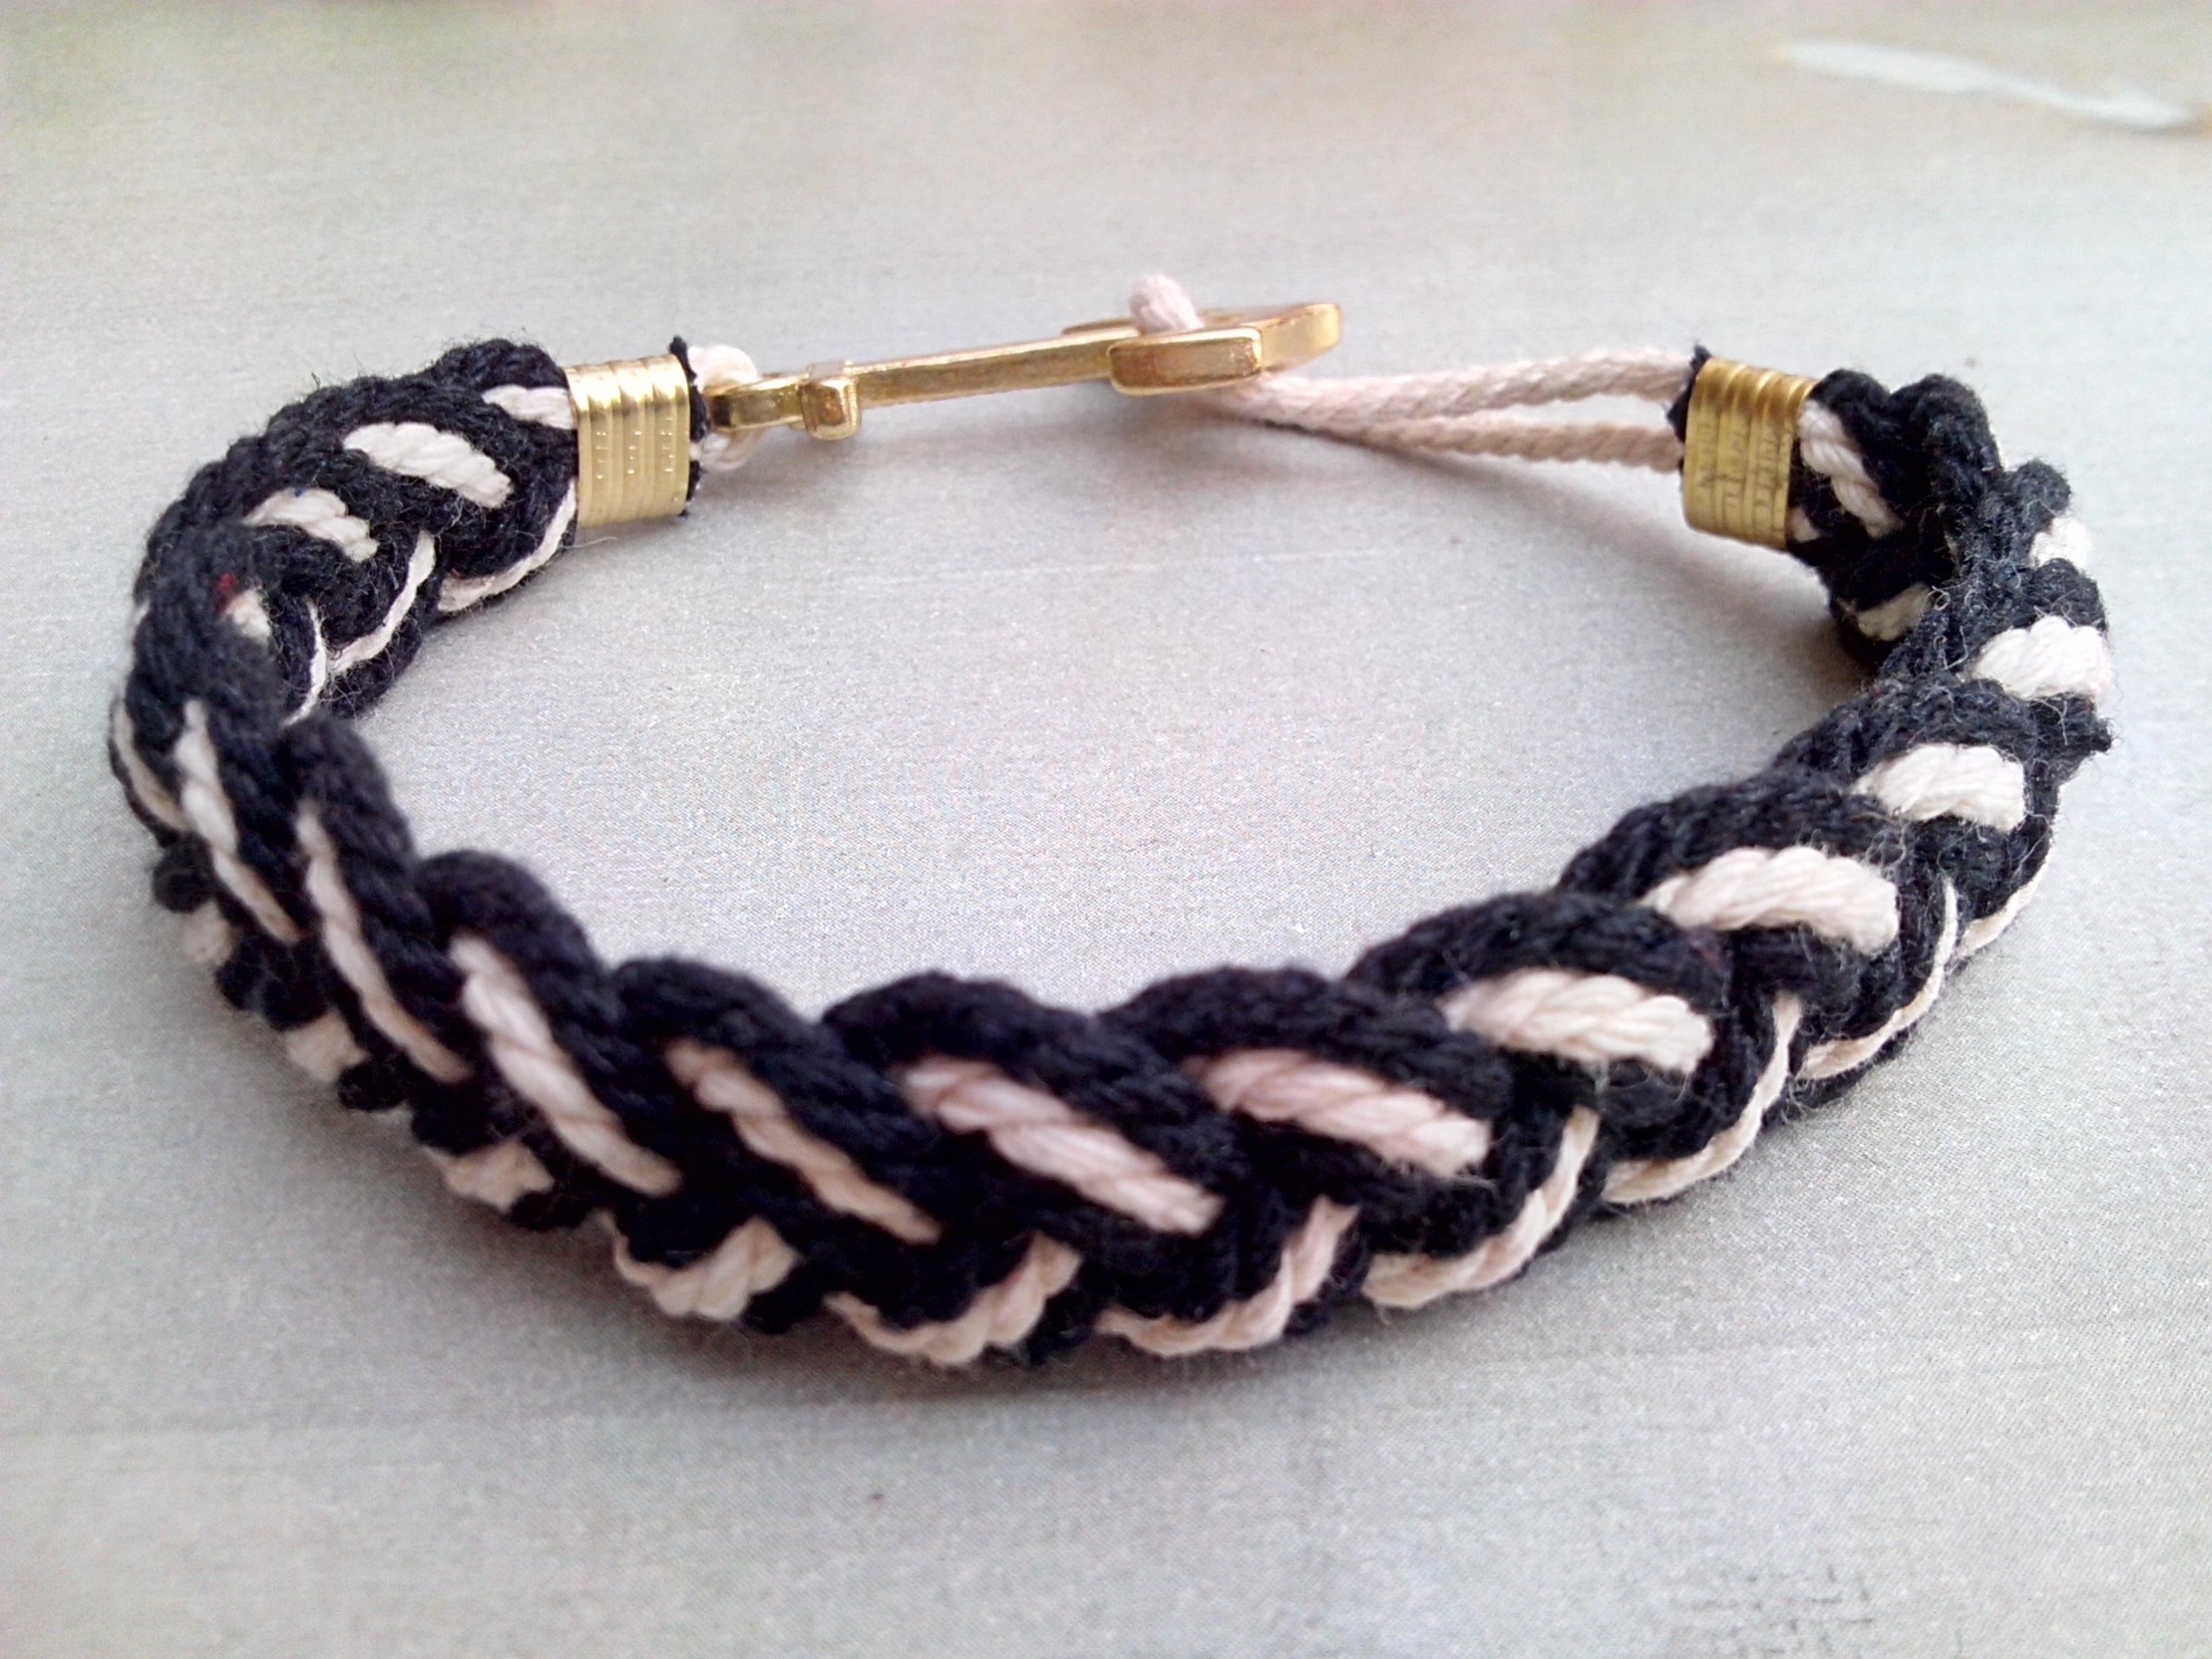 knitting knitted product bracelet exclusives fringe on the brand store wire